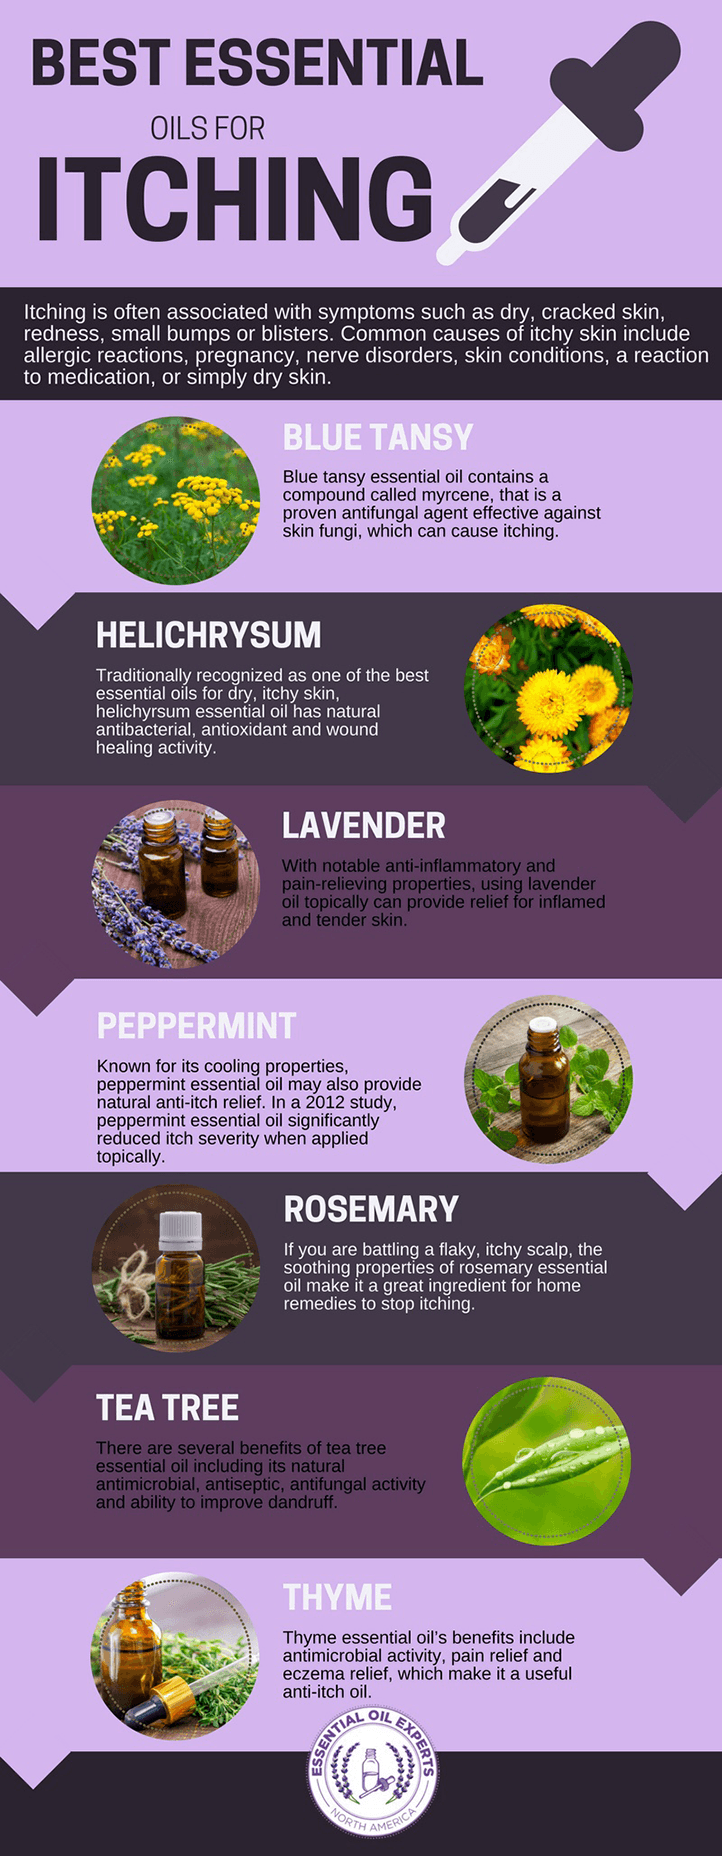 7 Best Essential Oils for Itching | EssentialOilExperts.com